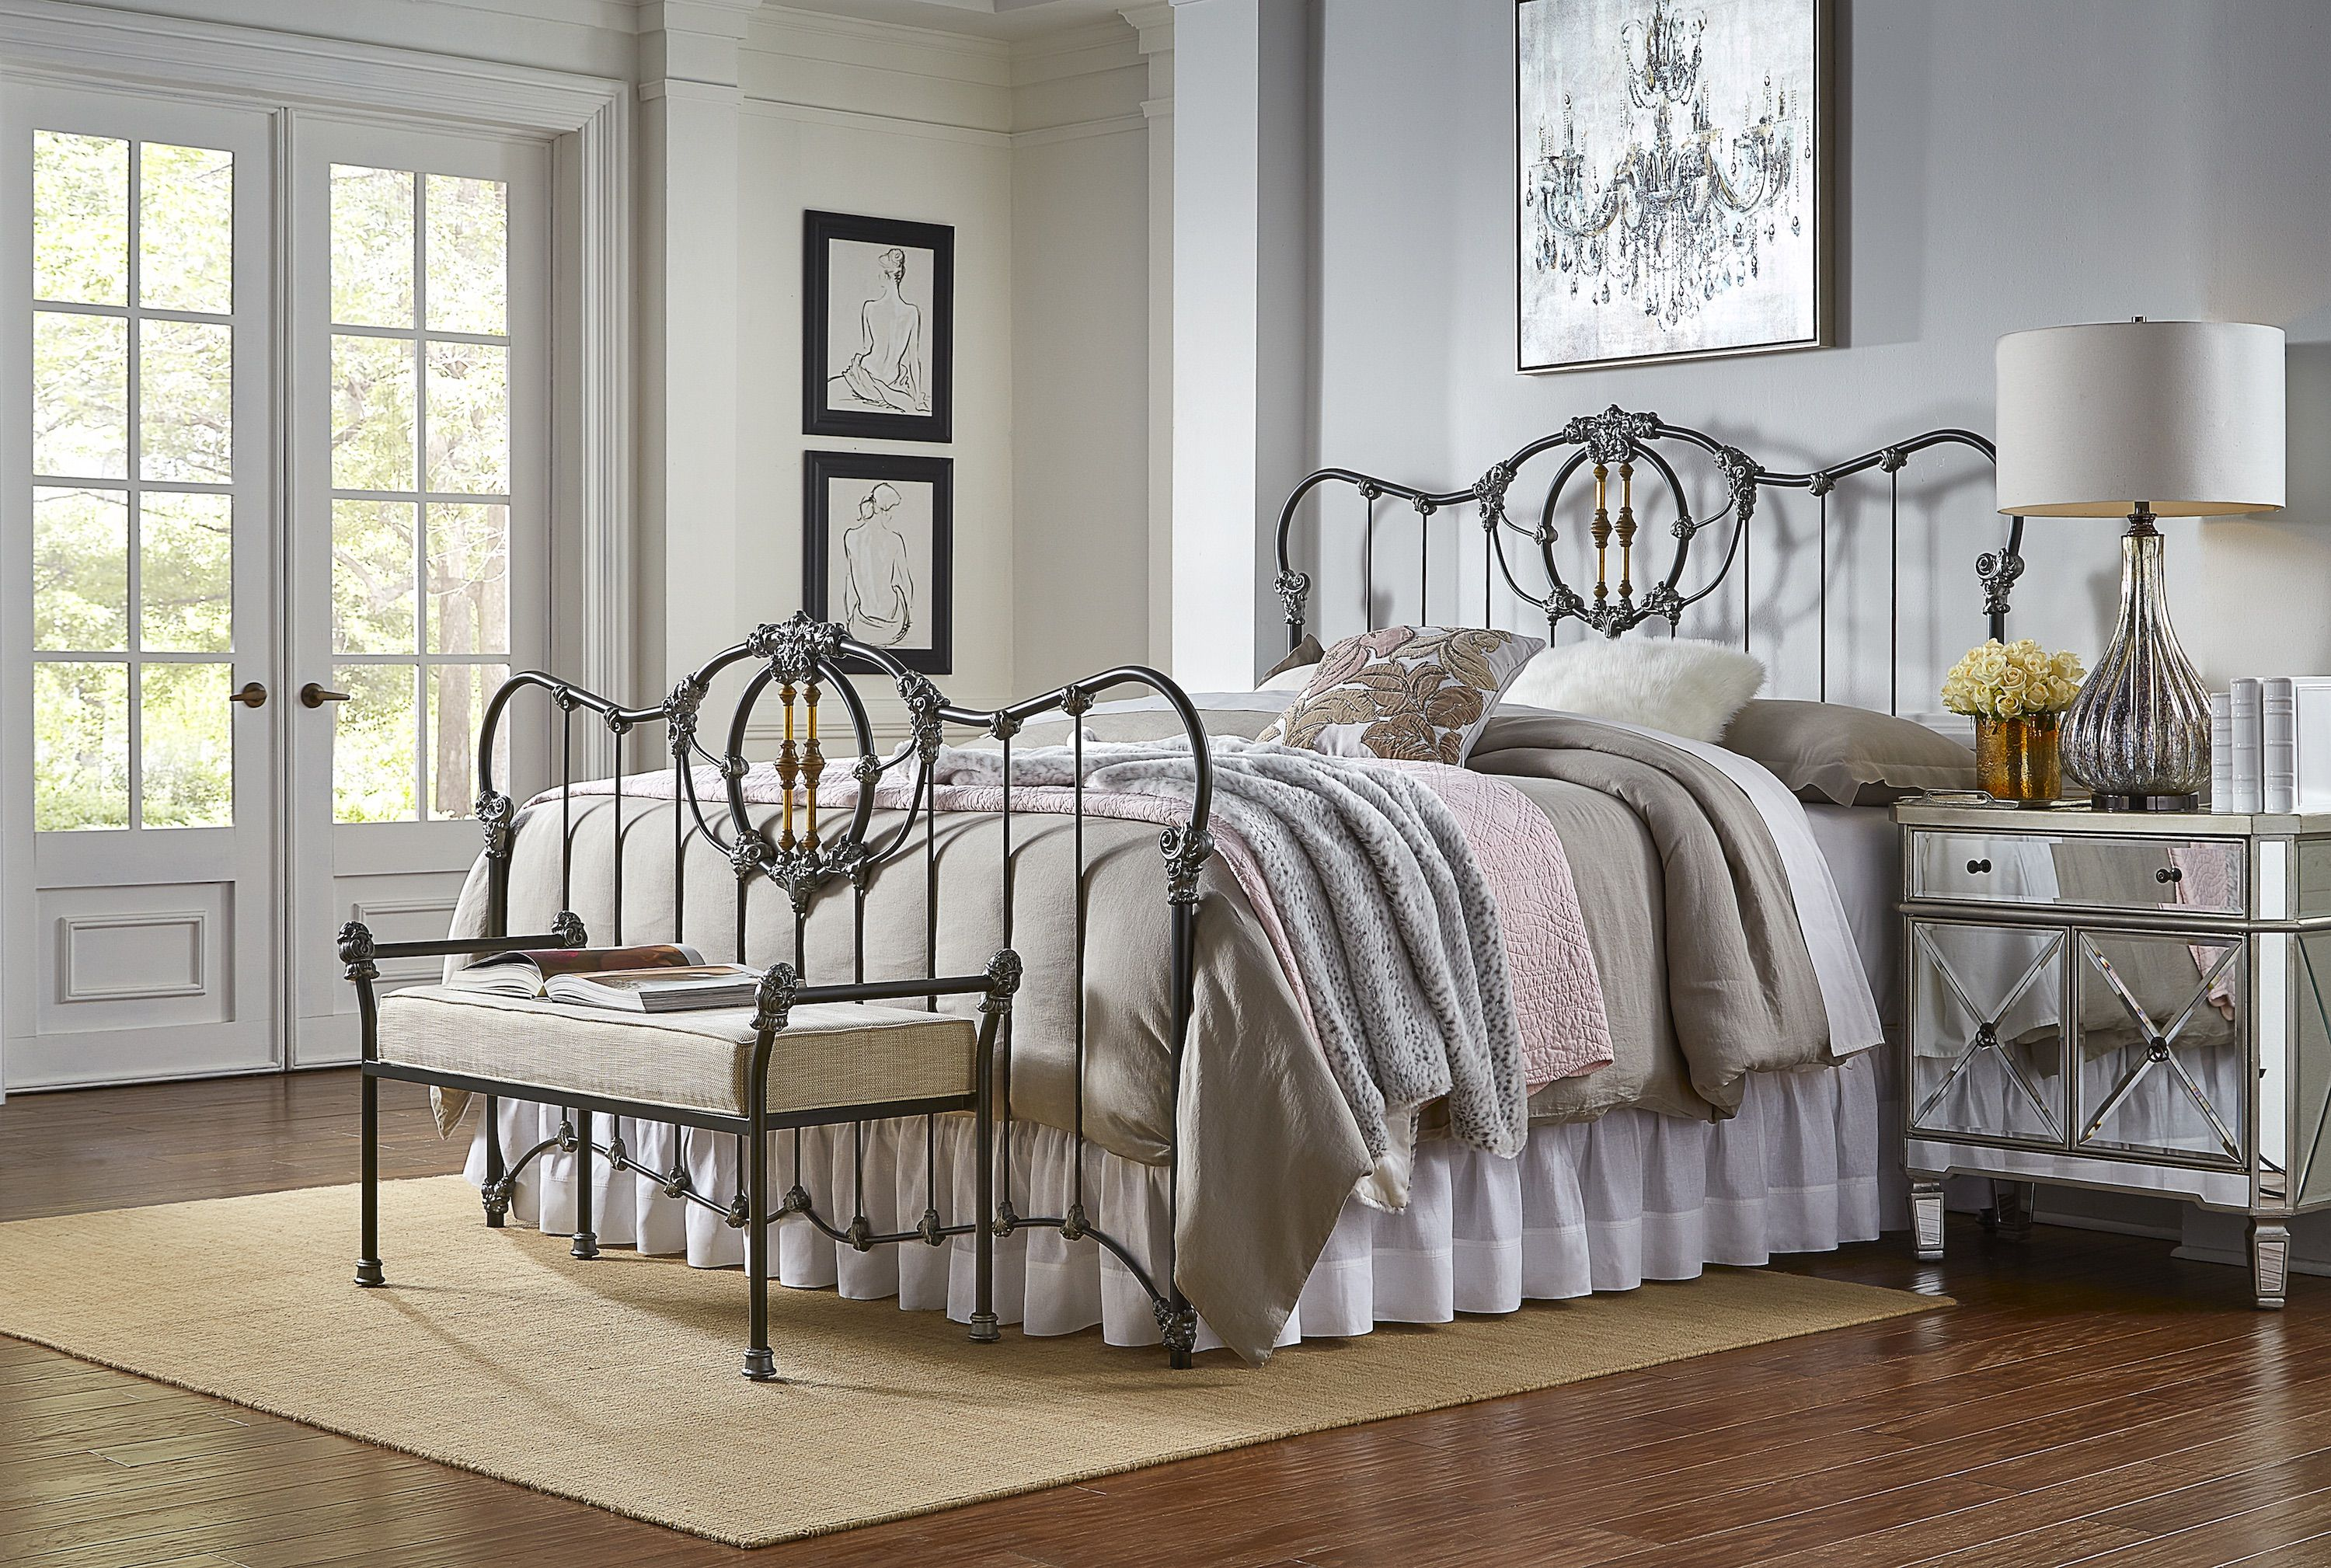 Iron Bed Bench To Coordinate With This Iron Bed See More At